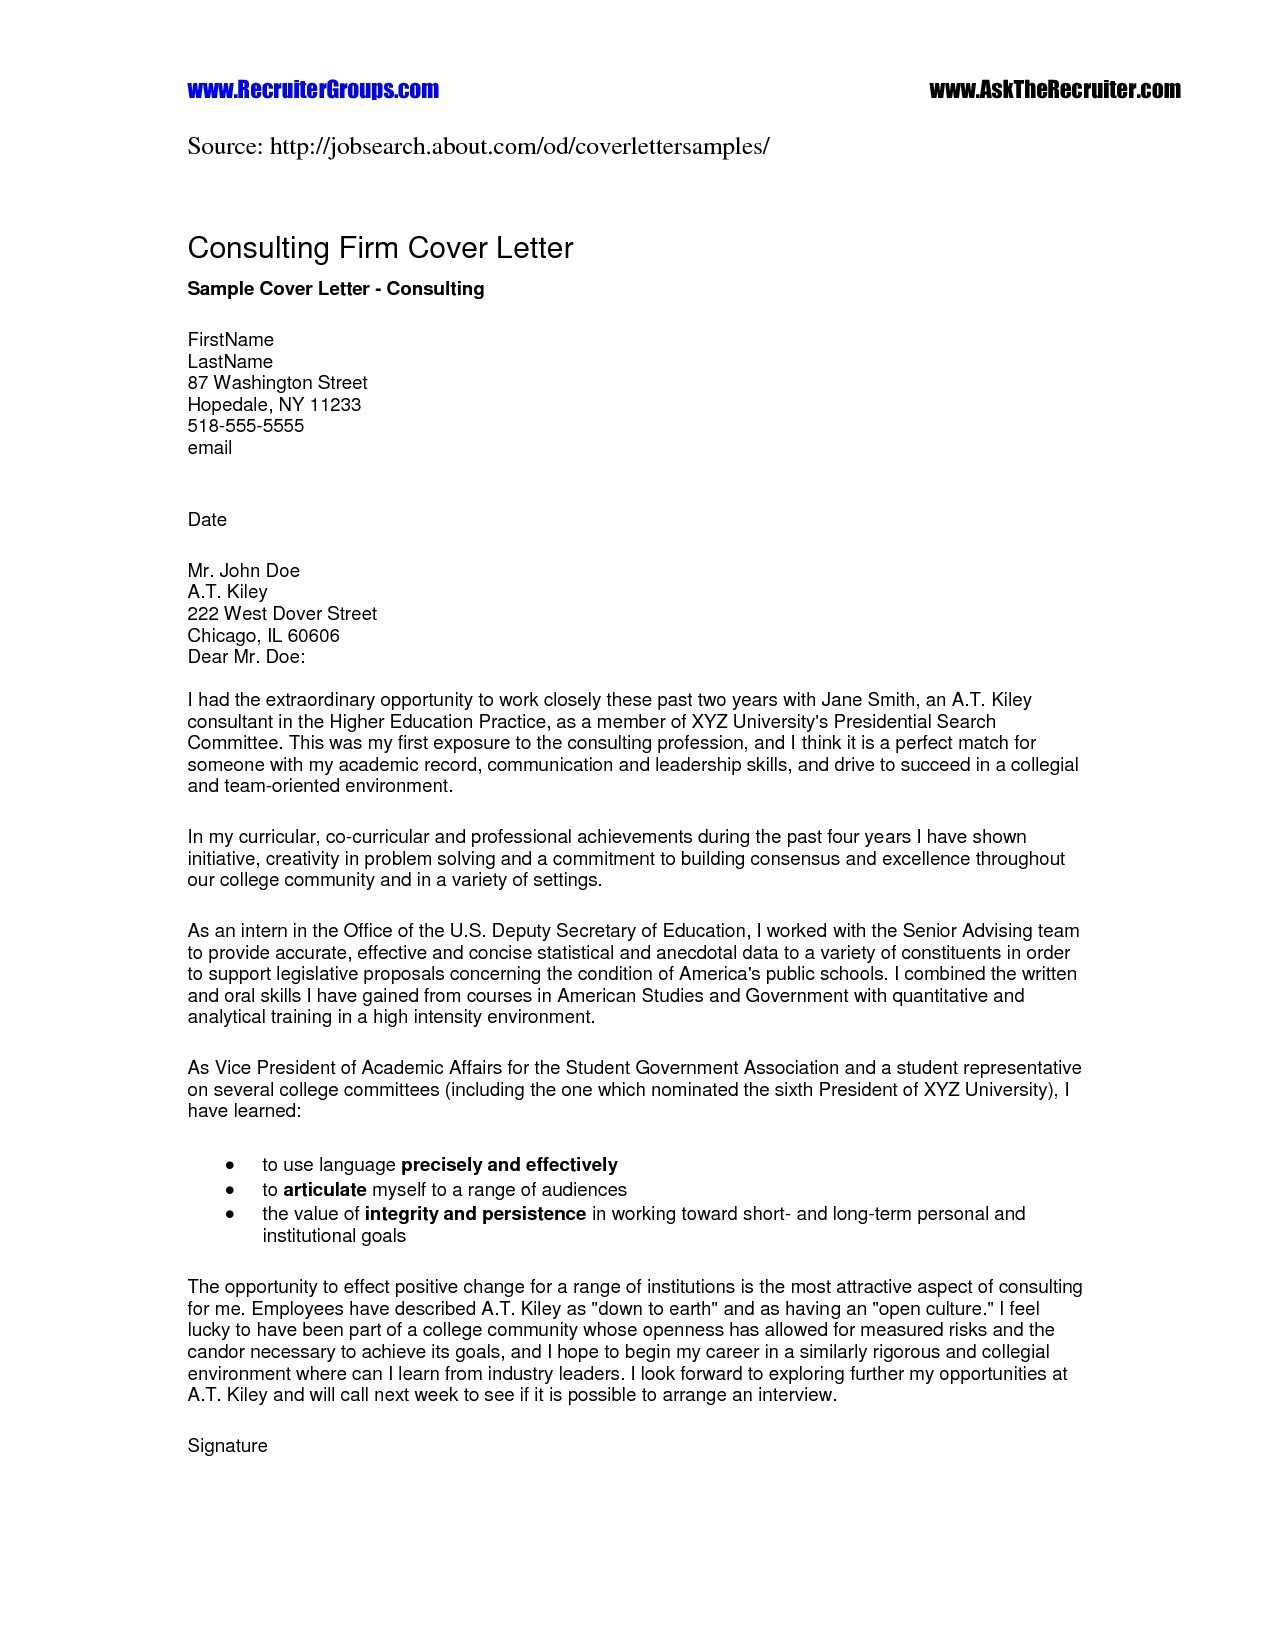 Business Presentation Letter Template - Business Cover Letter format Sample Fresh format Business Cover